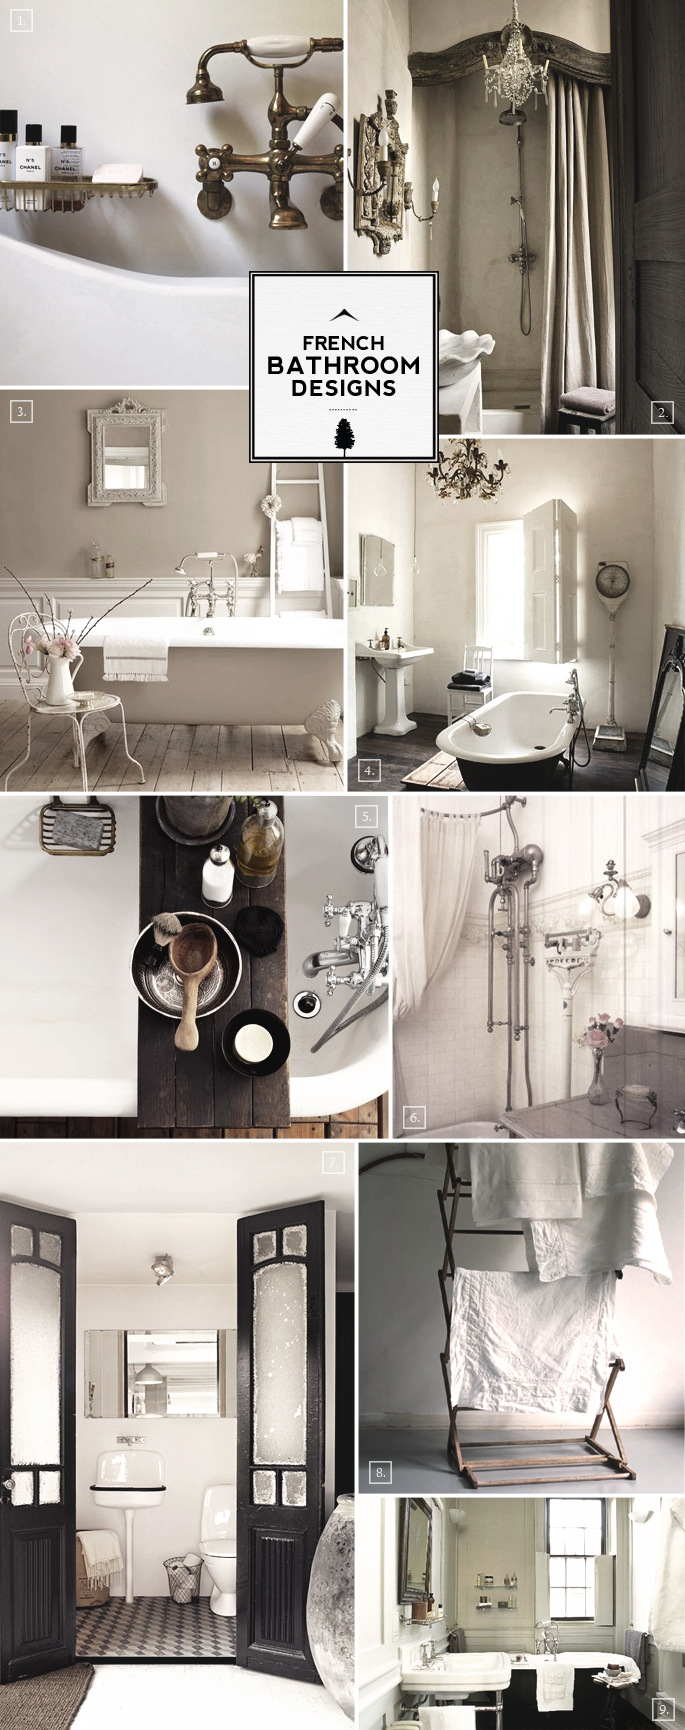 French Style Bathroom Decor and Designs | Home Tree Atlas